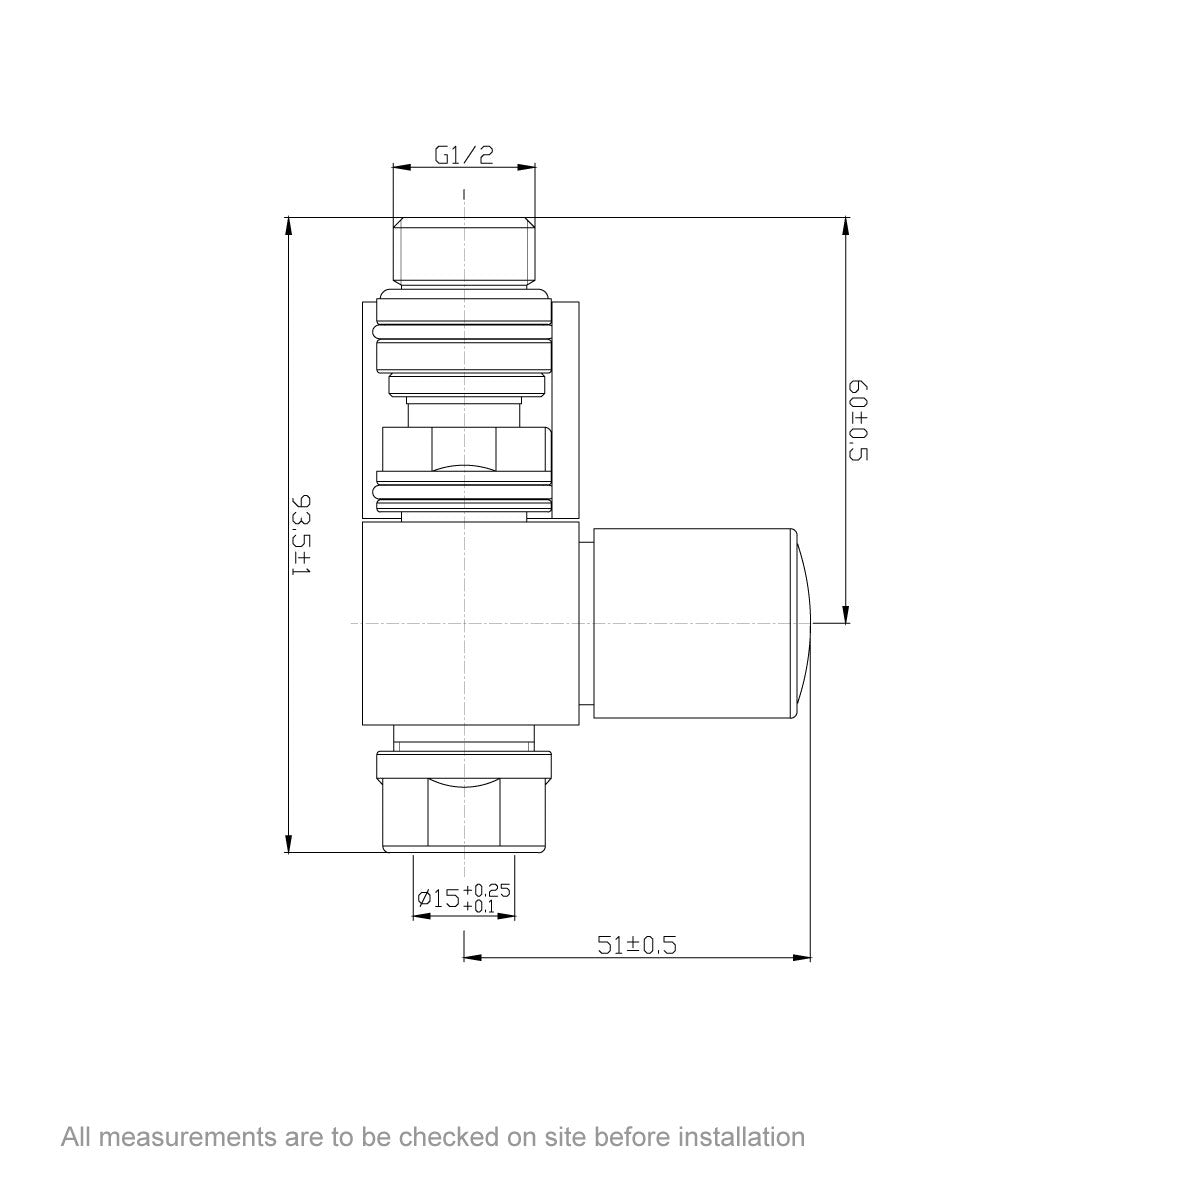 Dimensions for Orchard Square straight radiator valves